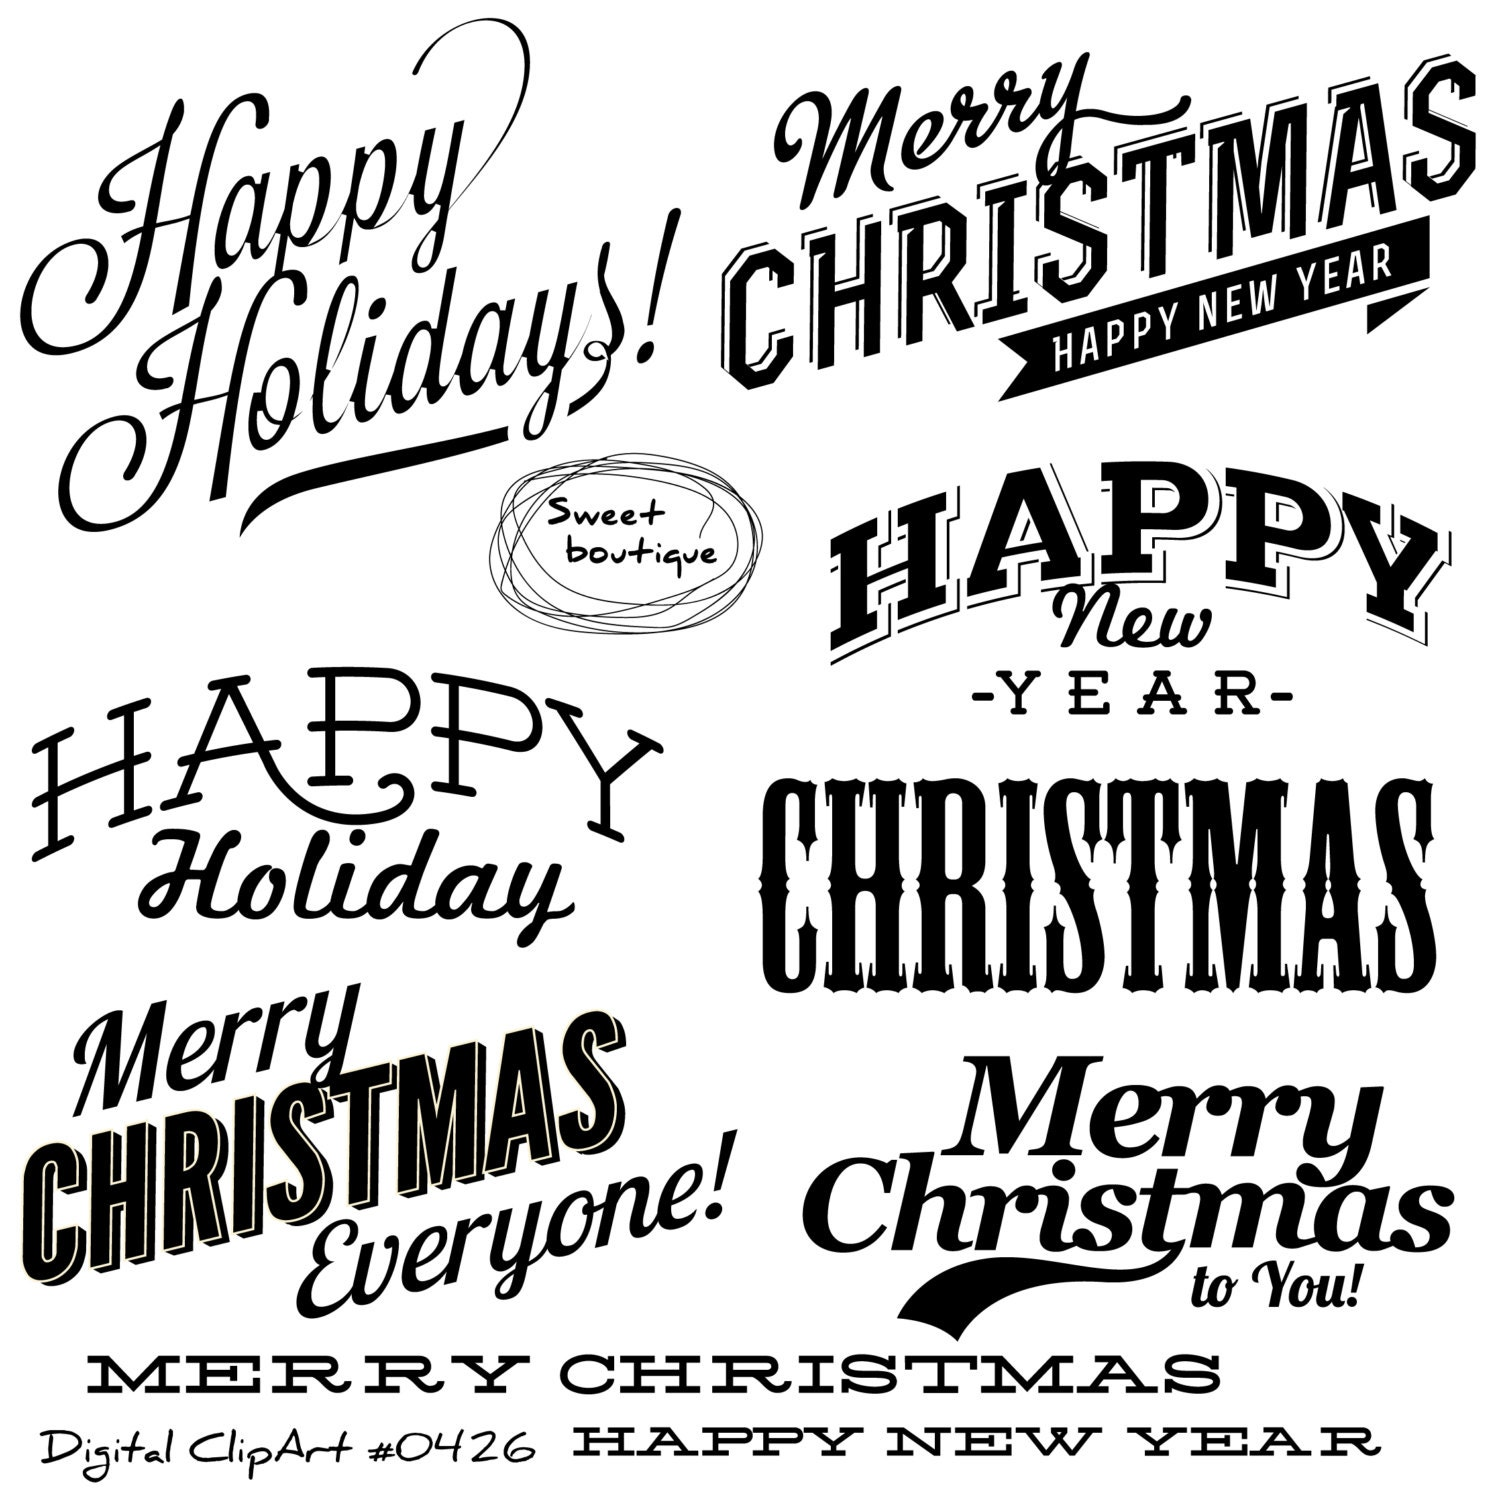 christmas clipart christmas quotes christmas text christmas overlays christmas clip art merry christmas clipart new year clipart 0426 - Christmas Overlays